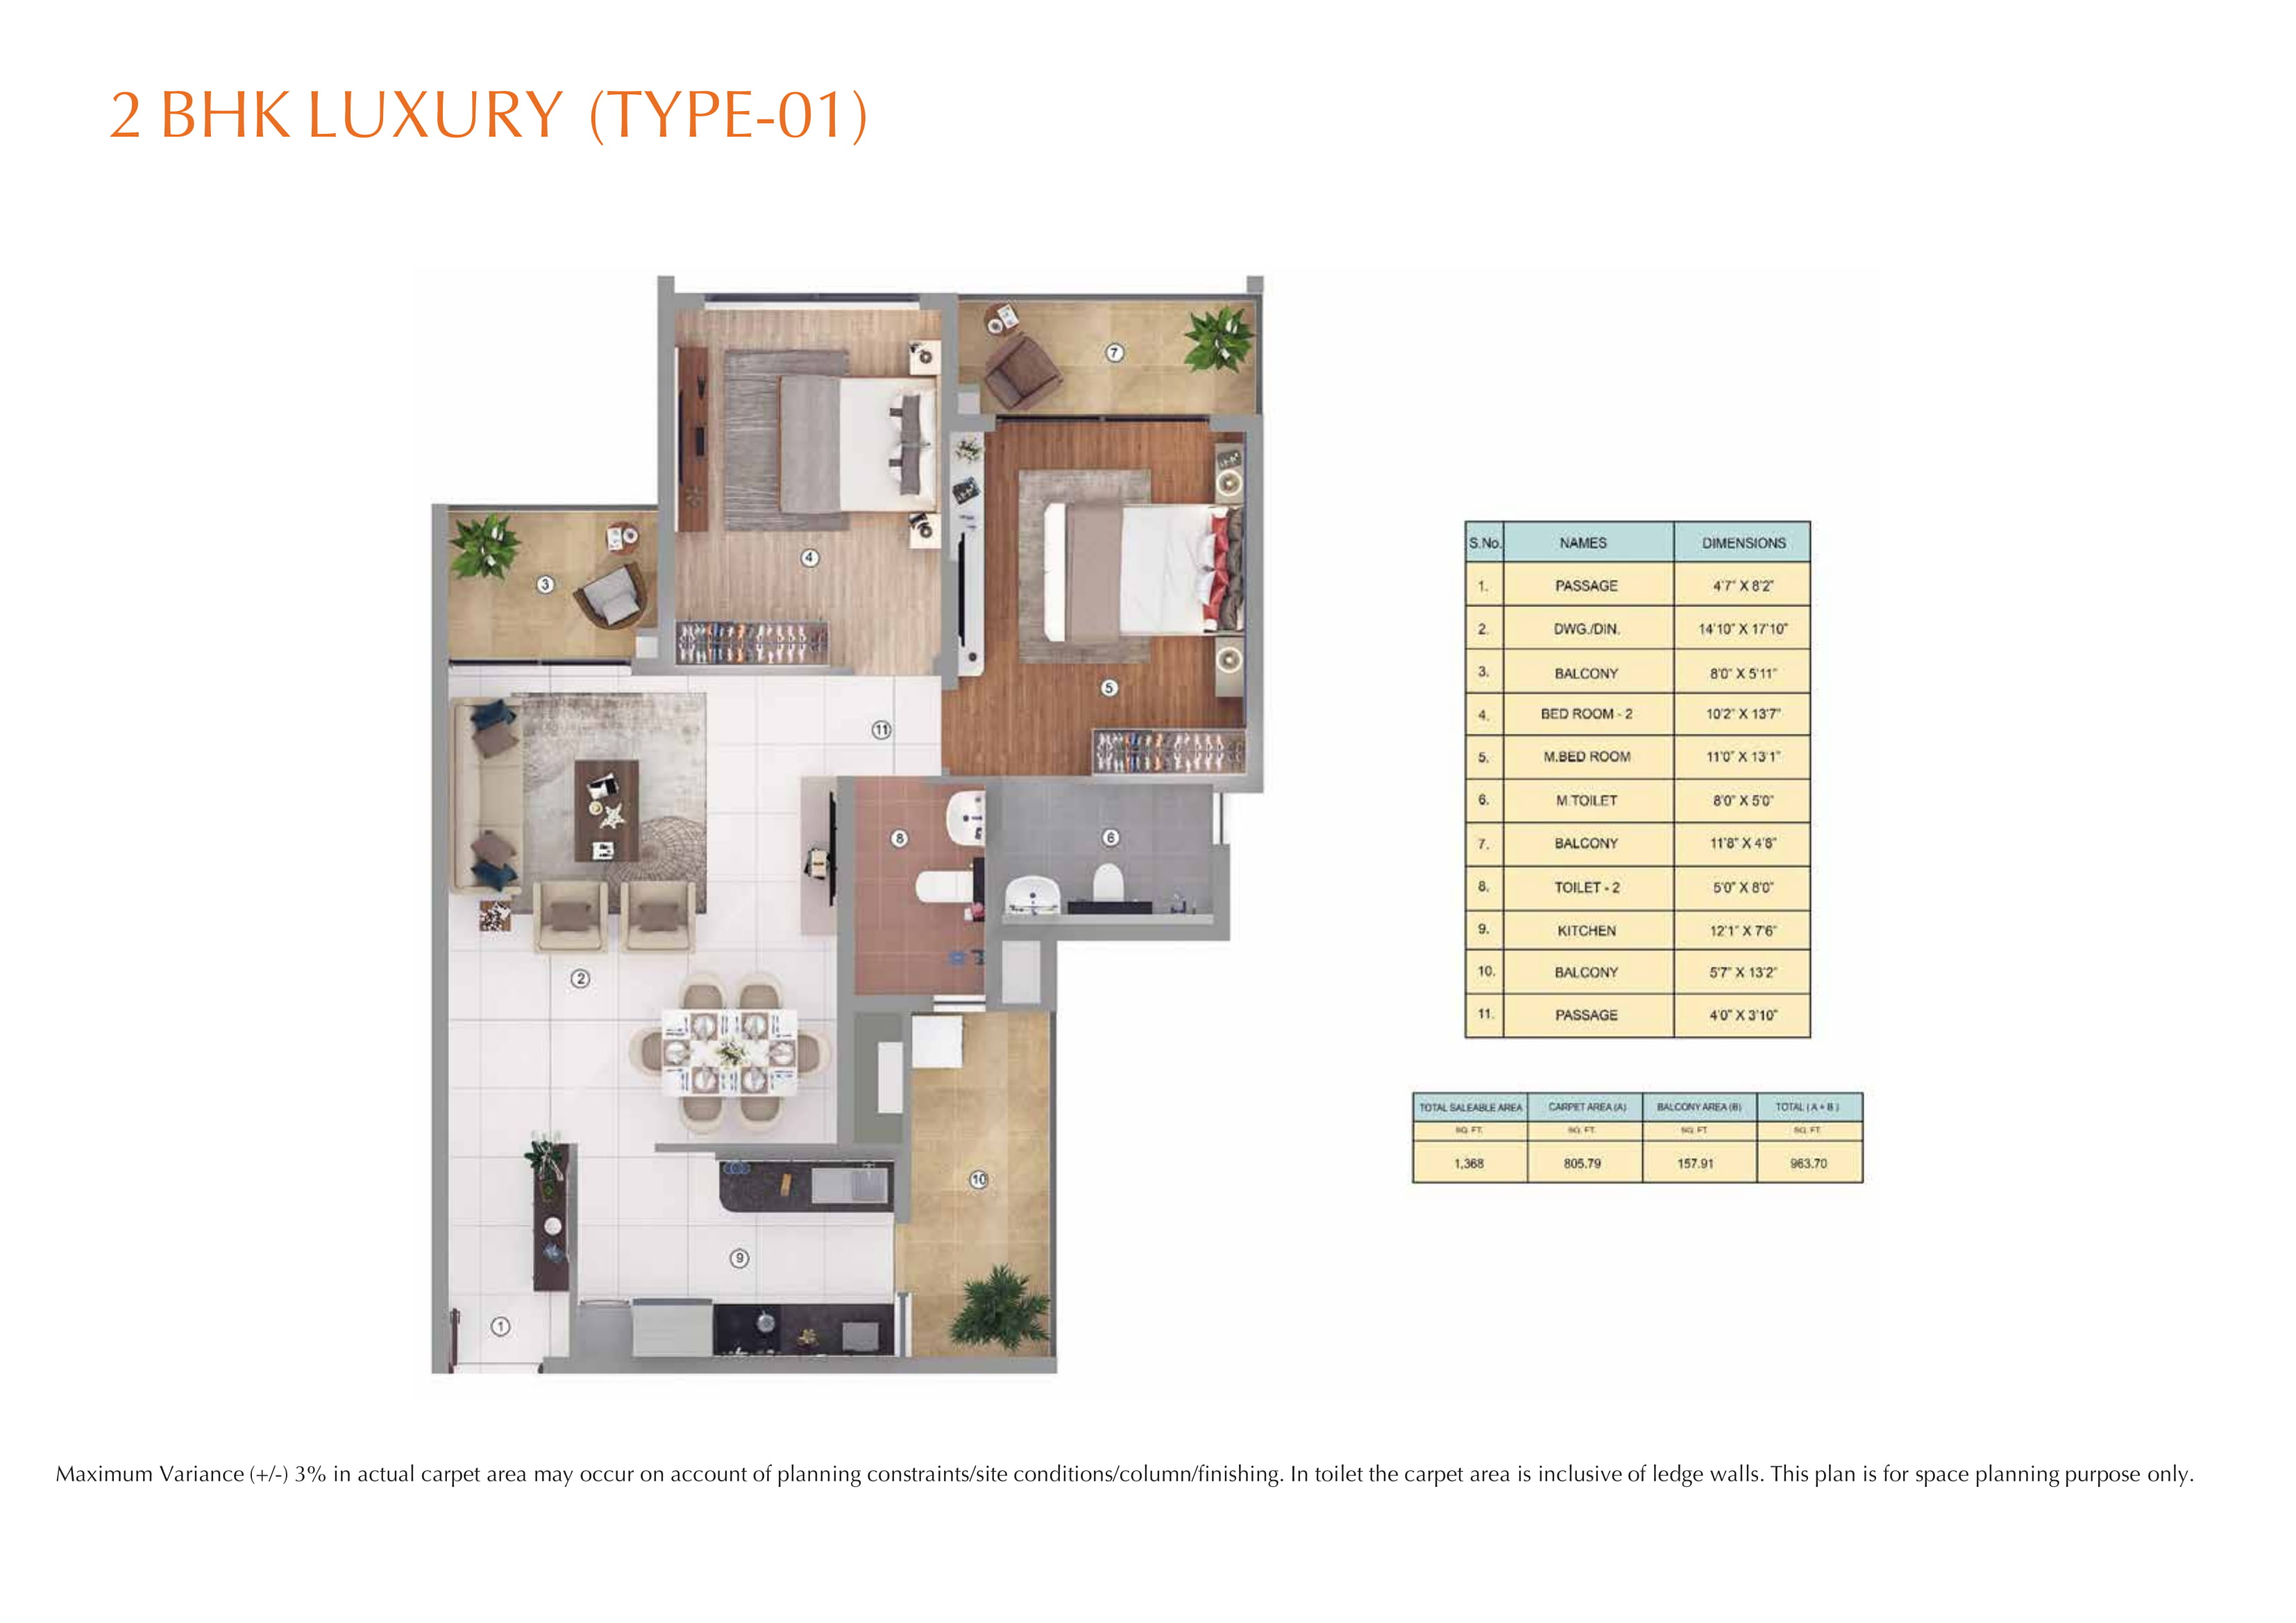 2BHK LURURY (TYPE-01) Layout Plan